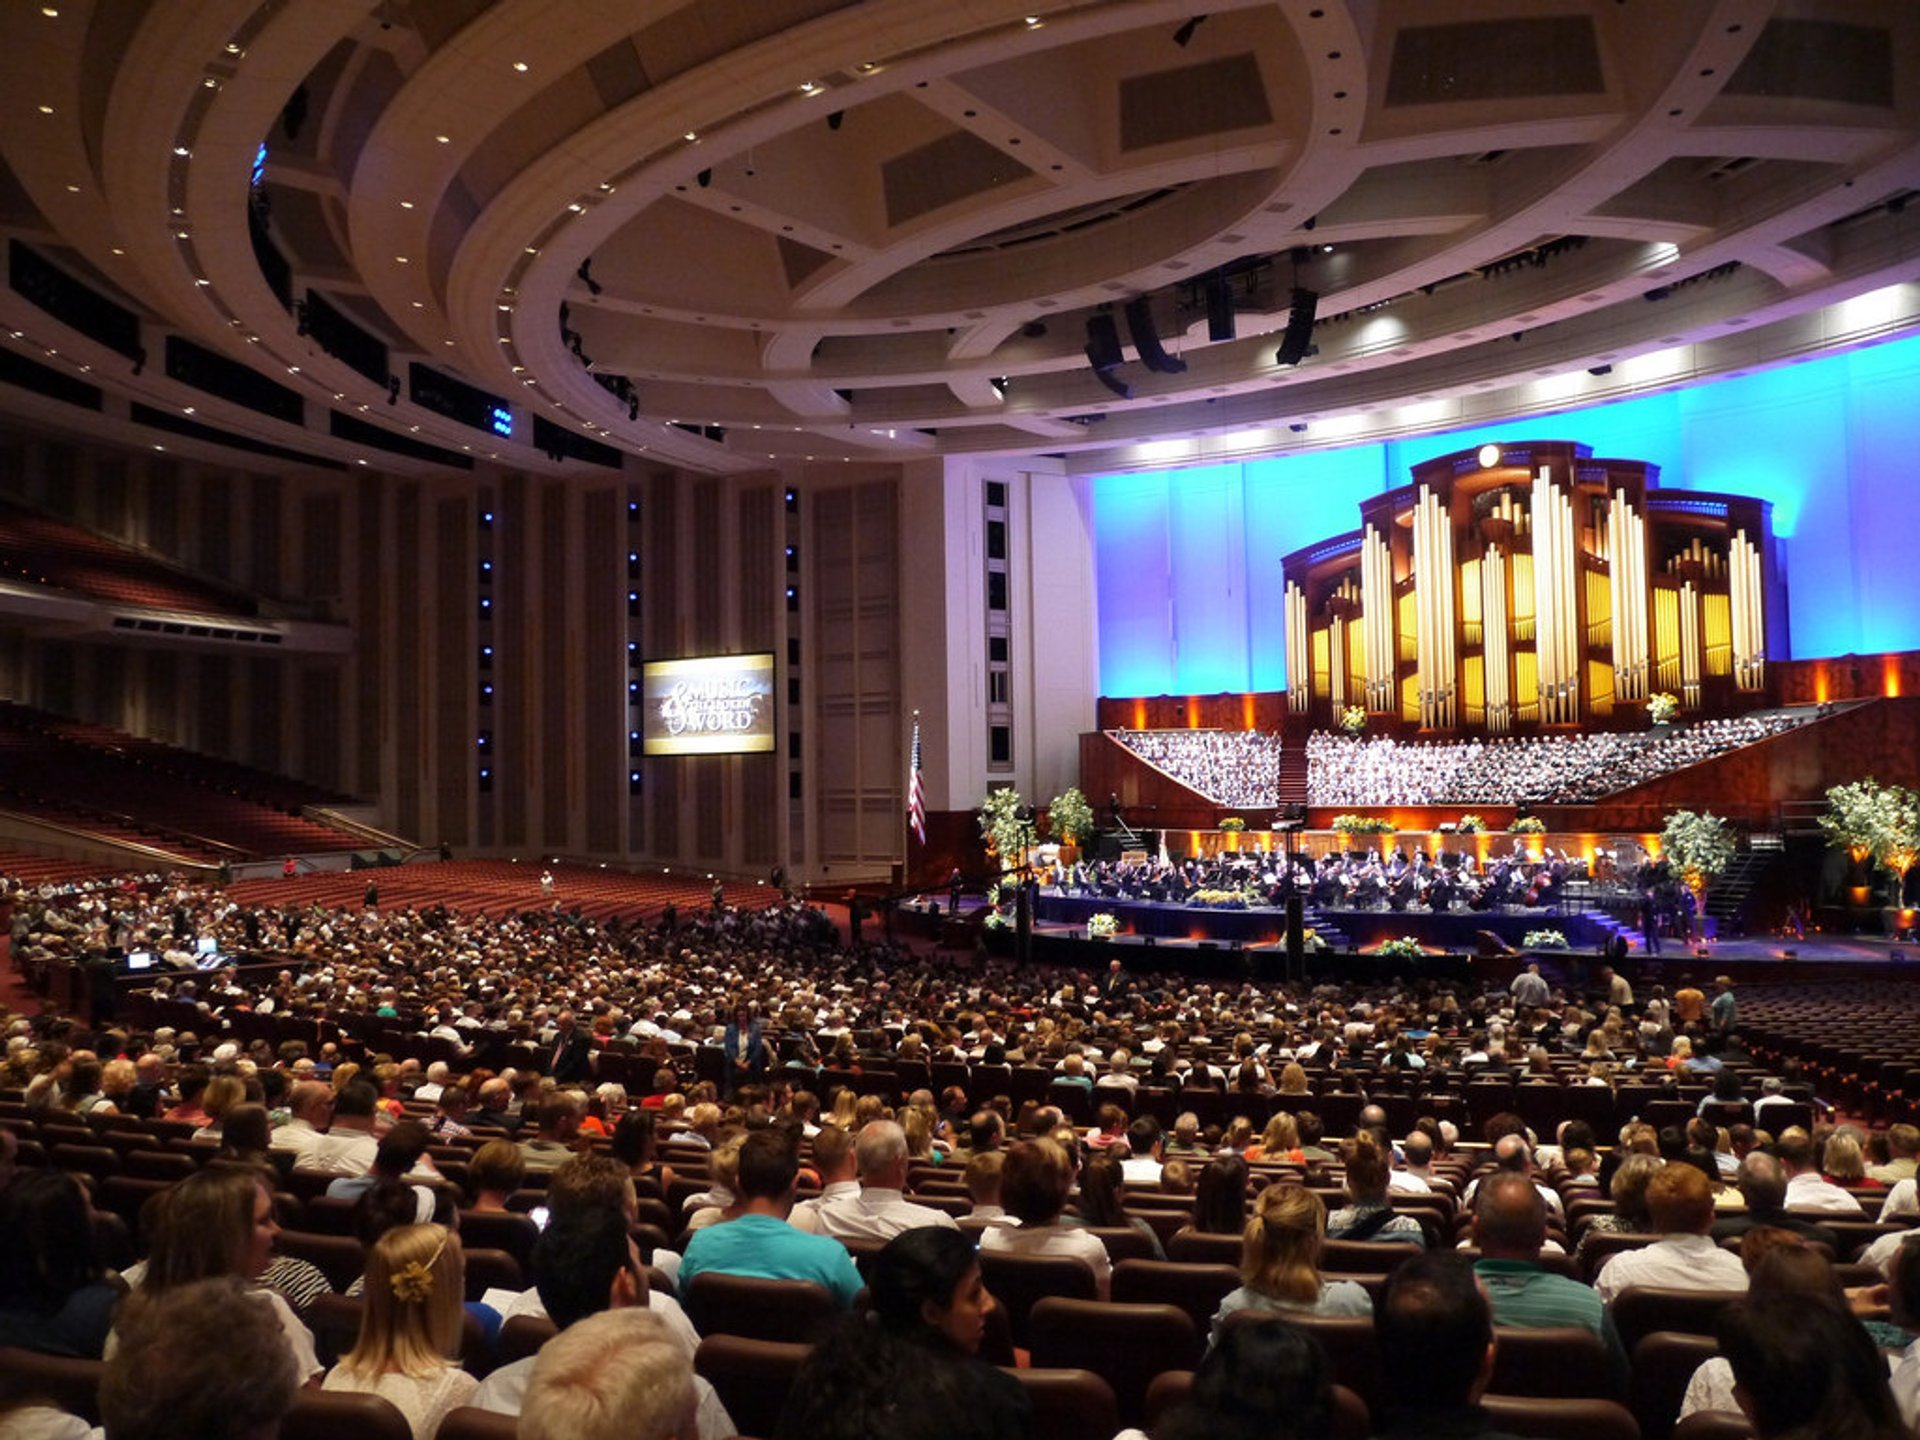 Mormon Tabernacle Choir Christmas Concert in Utah 2020 - Best Time